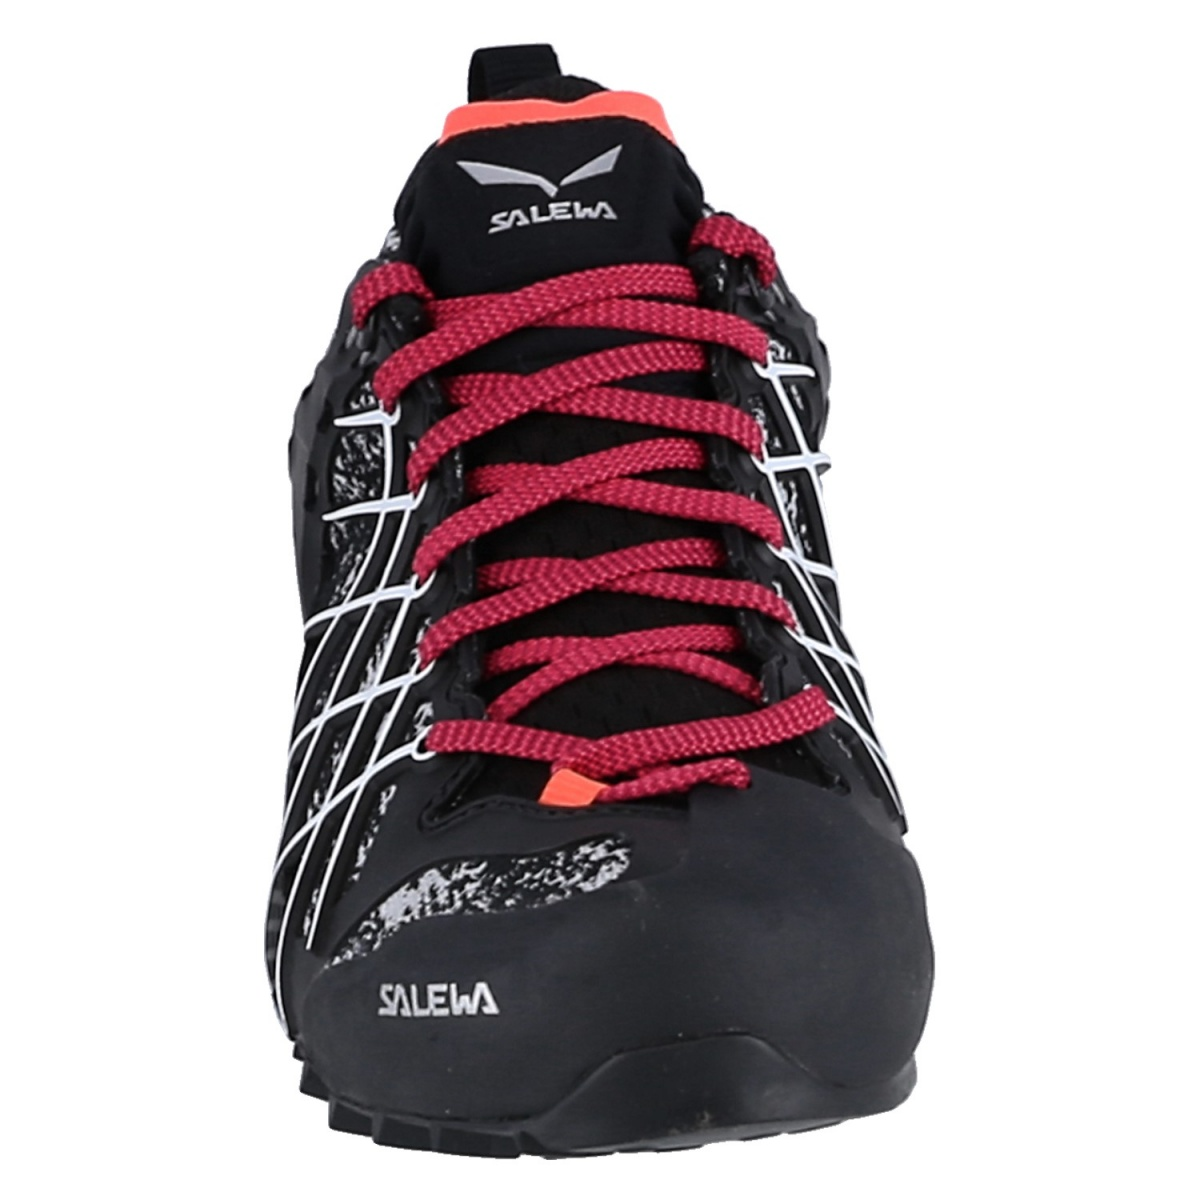 Salewa Wildfire GTX in grau Herren Outdoorschuhe online